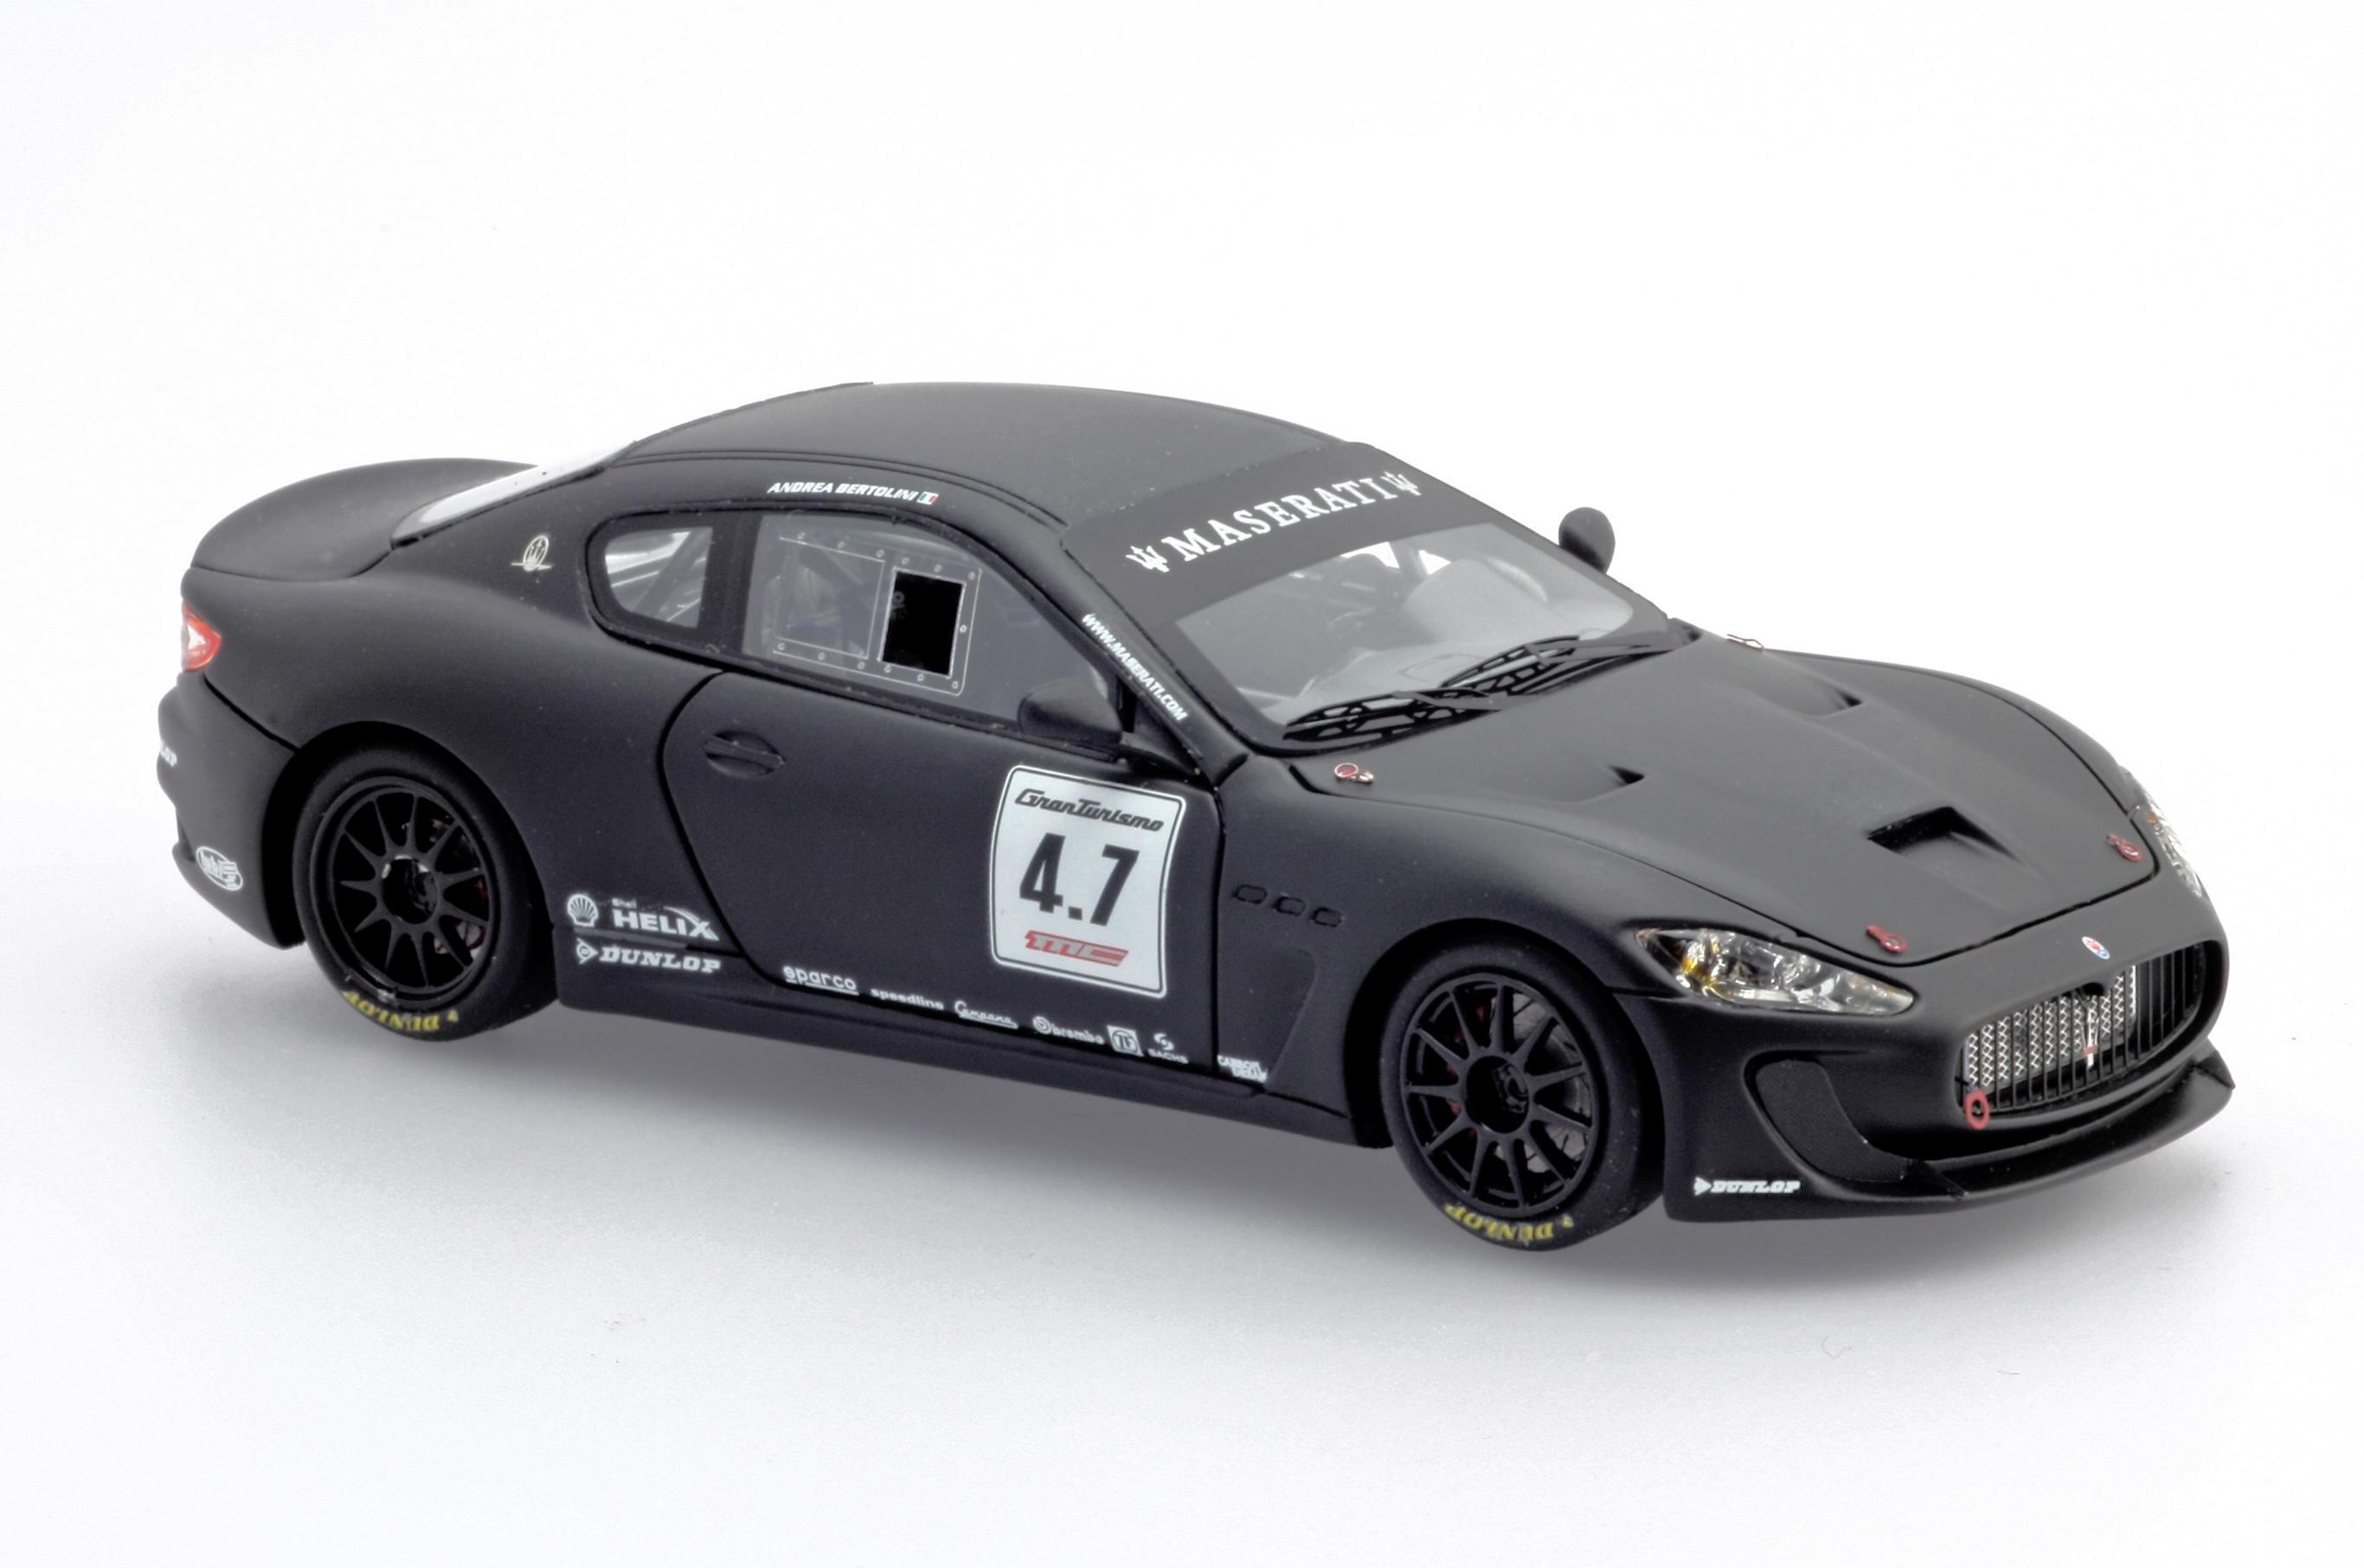 BBR Models: Maserati MC Concept - Matt Black (BBRC02C) in 1:43 scale